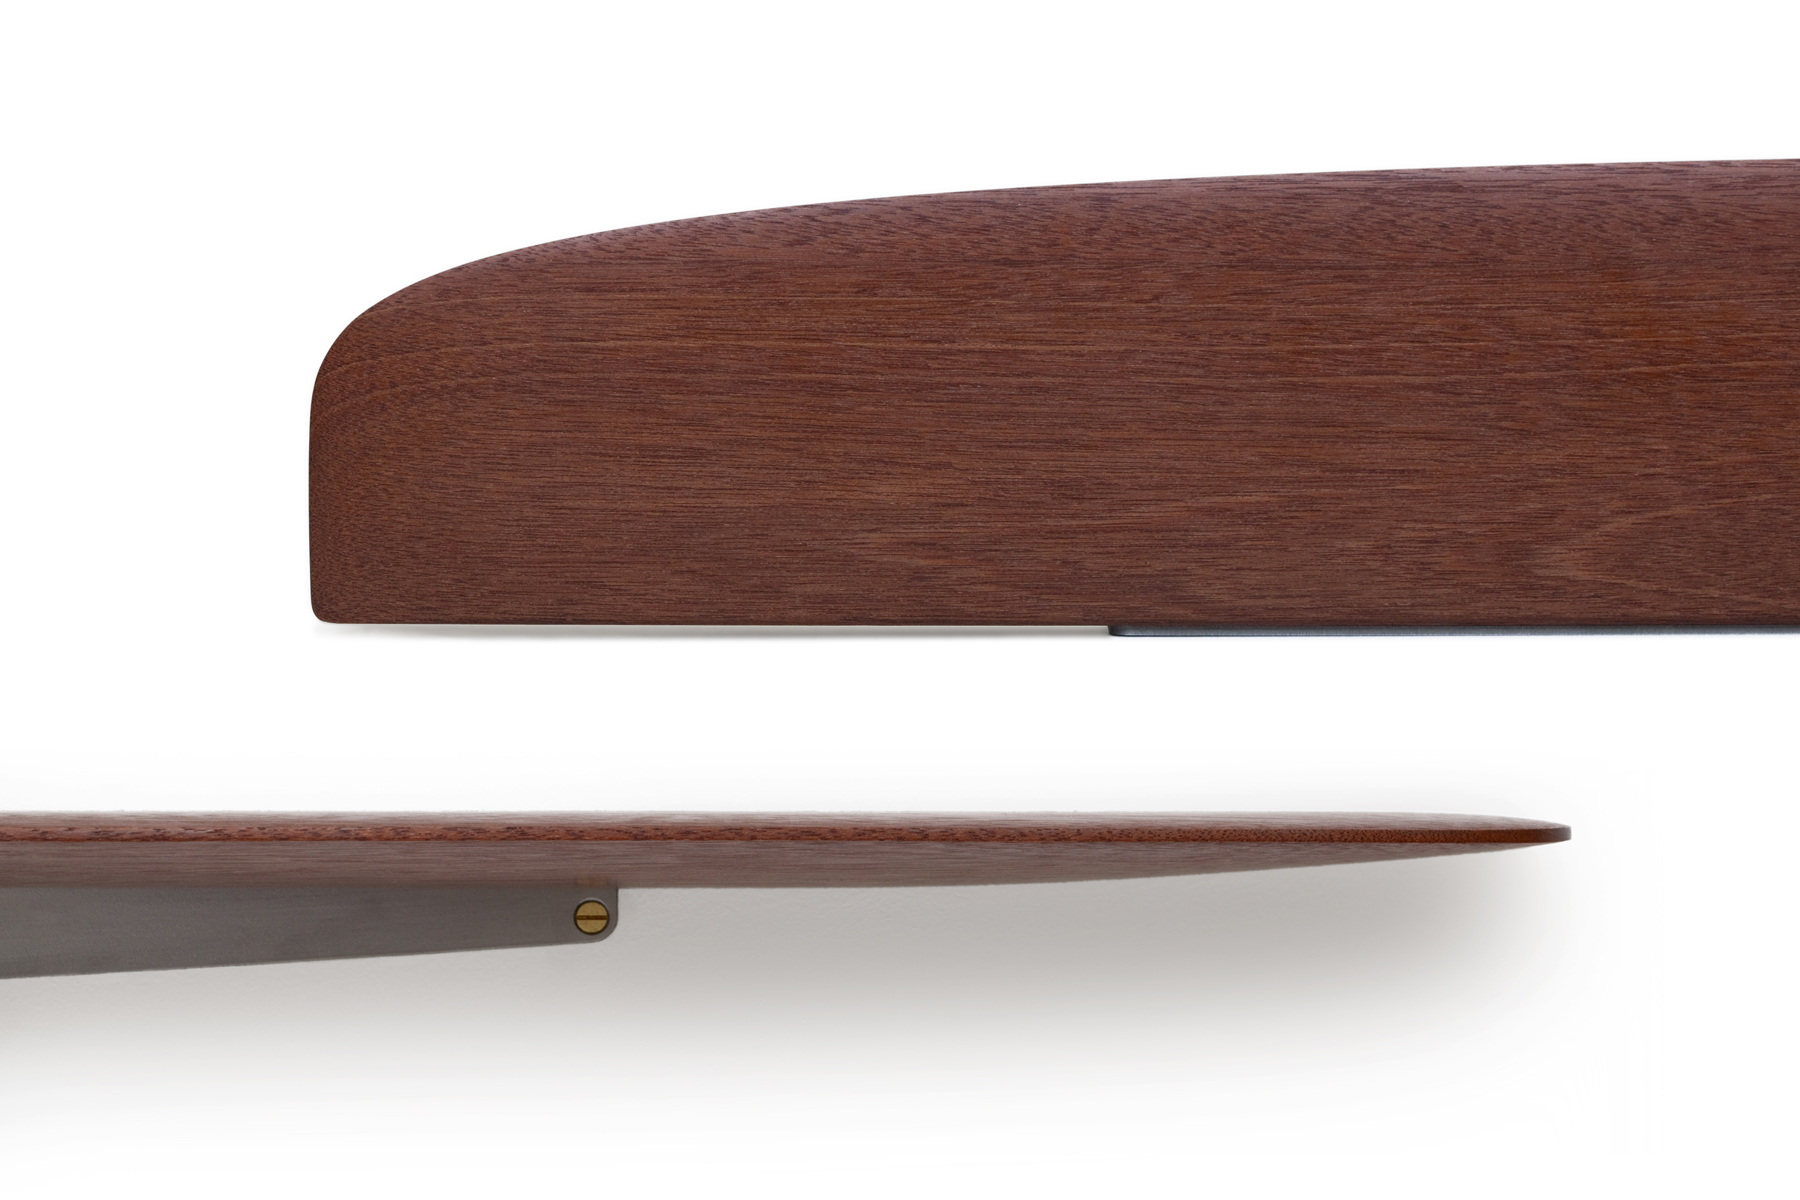 Propeller Shelves in Mahogany and Satin Lacquer Steel